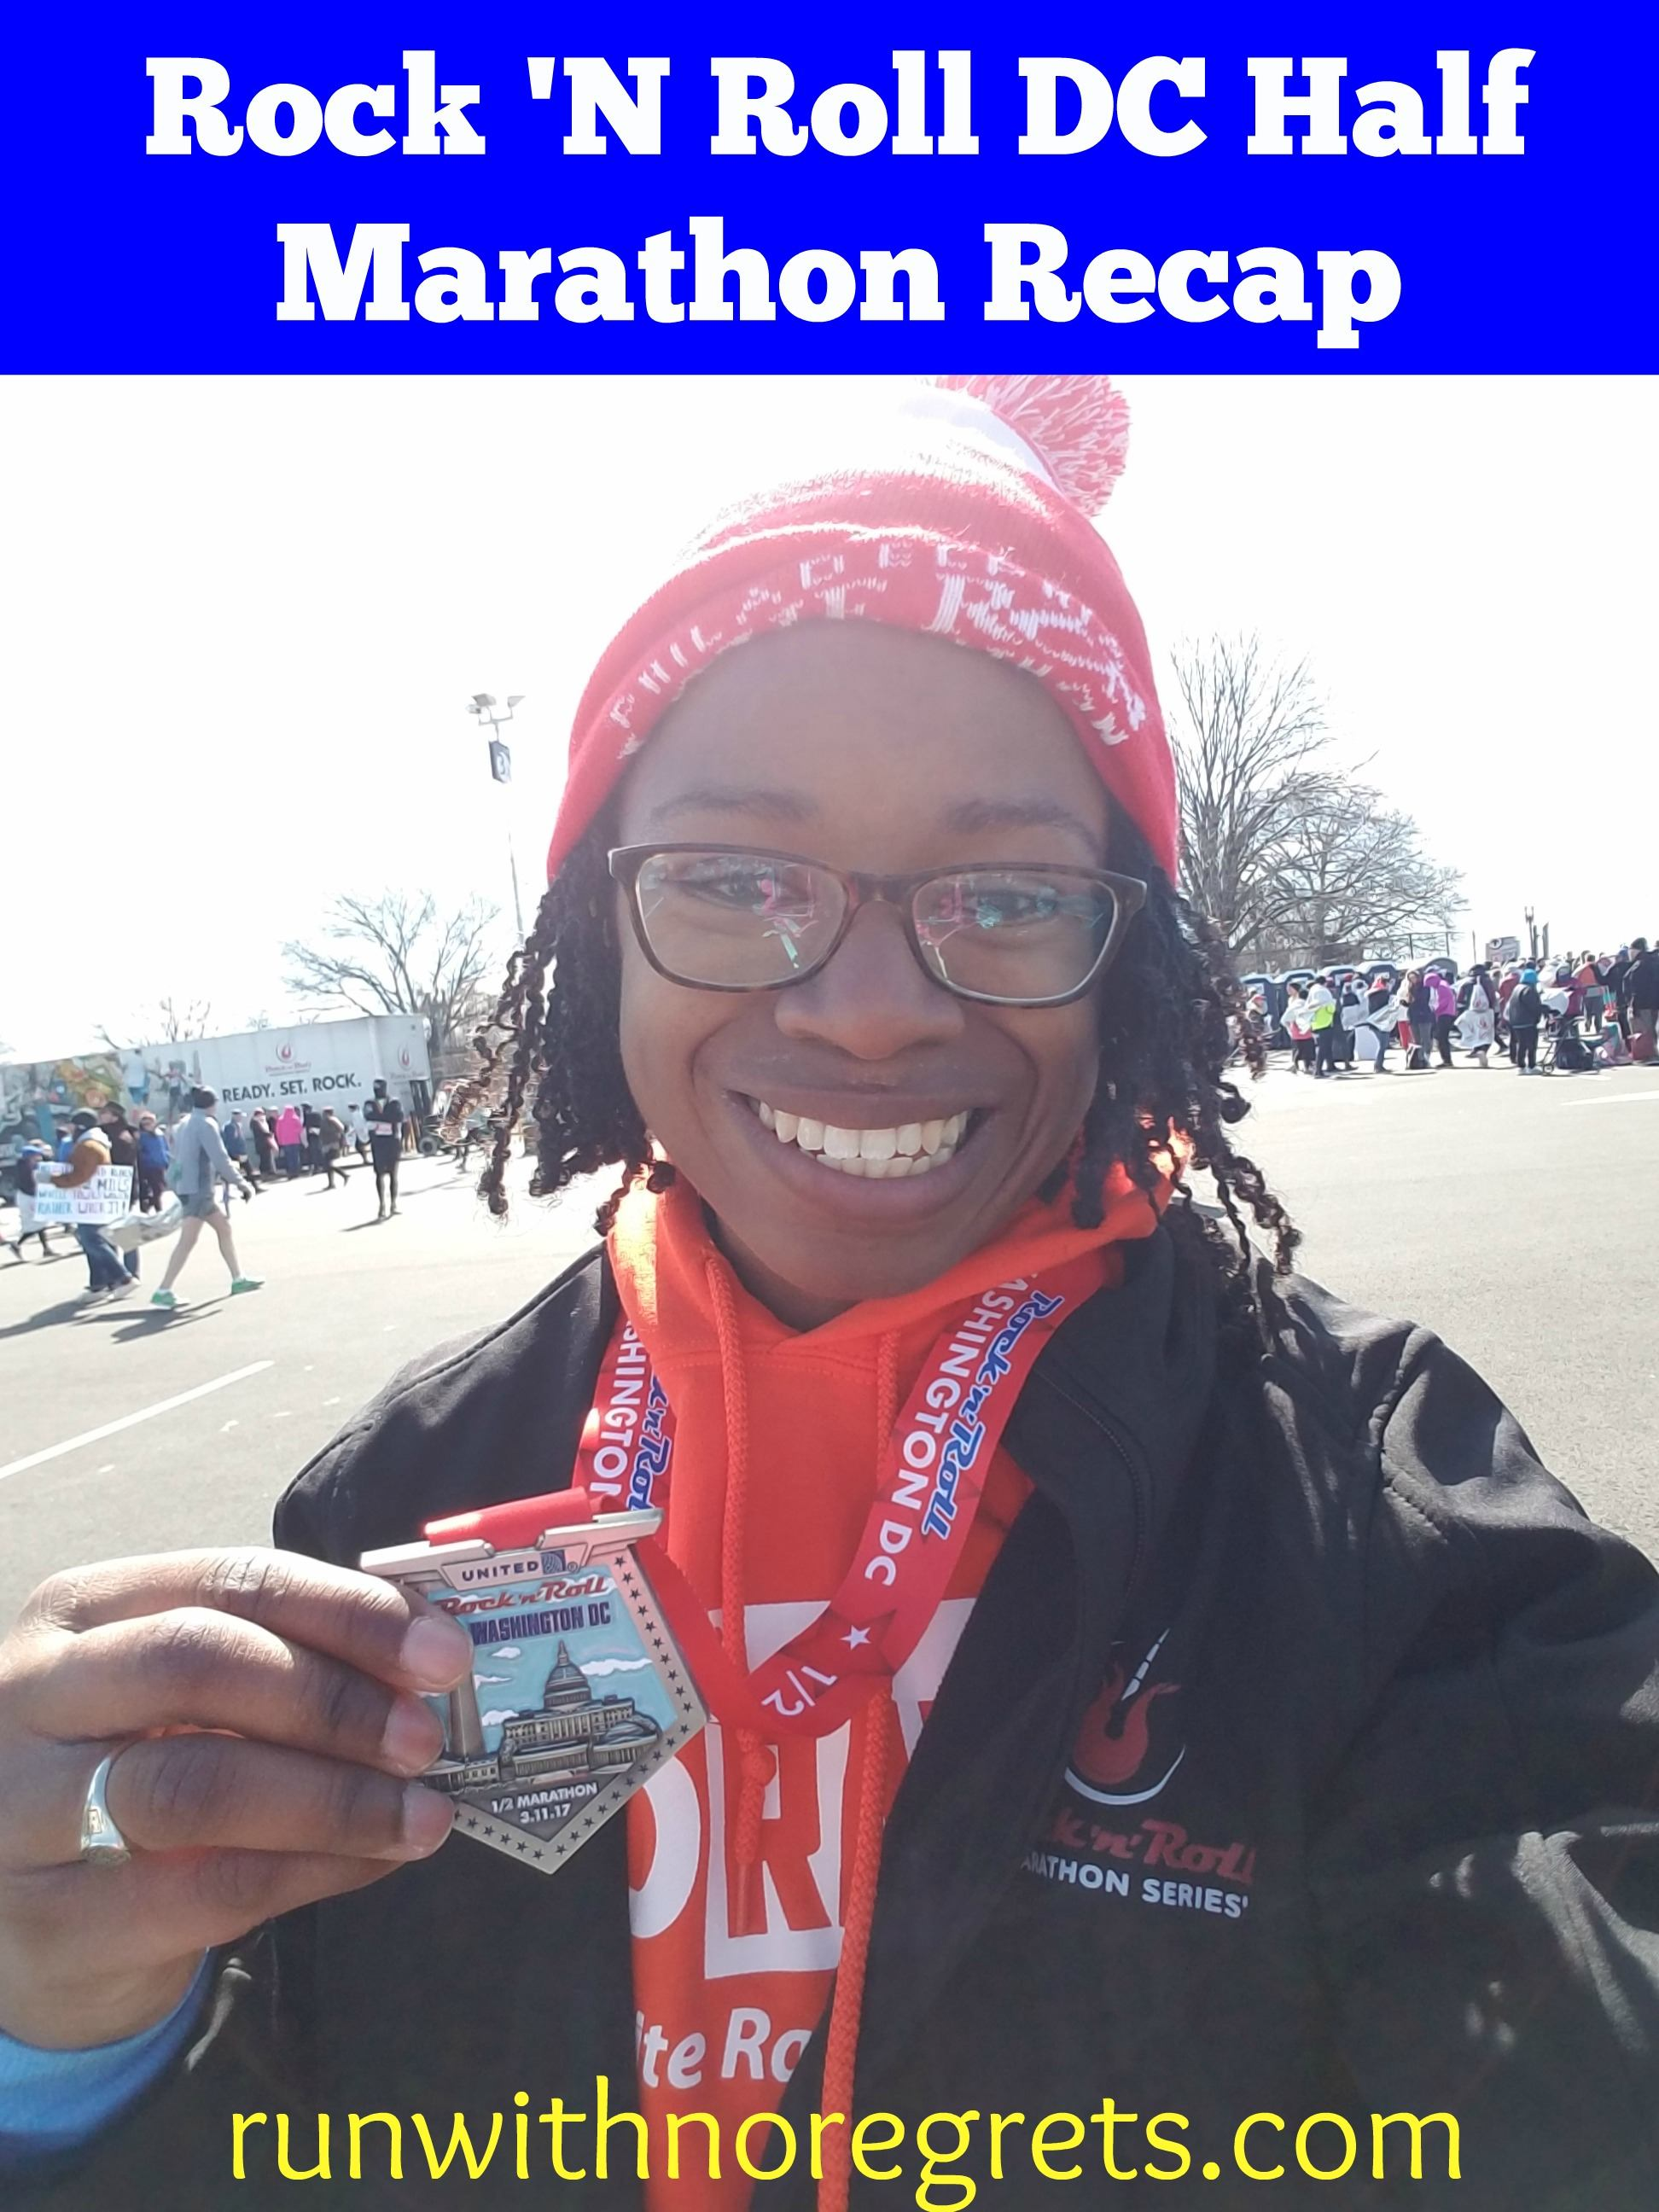 Check out my recap of the Rock 'N Roll DC Half Marathon - it's a great race, but definitely a challenging course! Find more race recaps at runwithnoregrets.com!